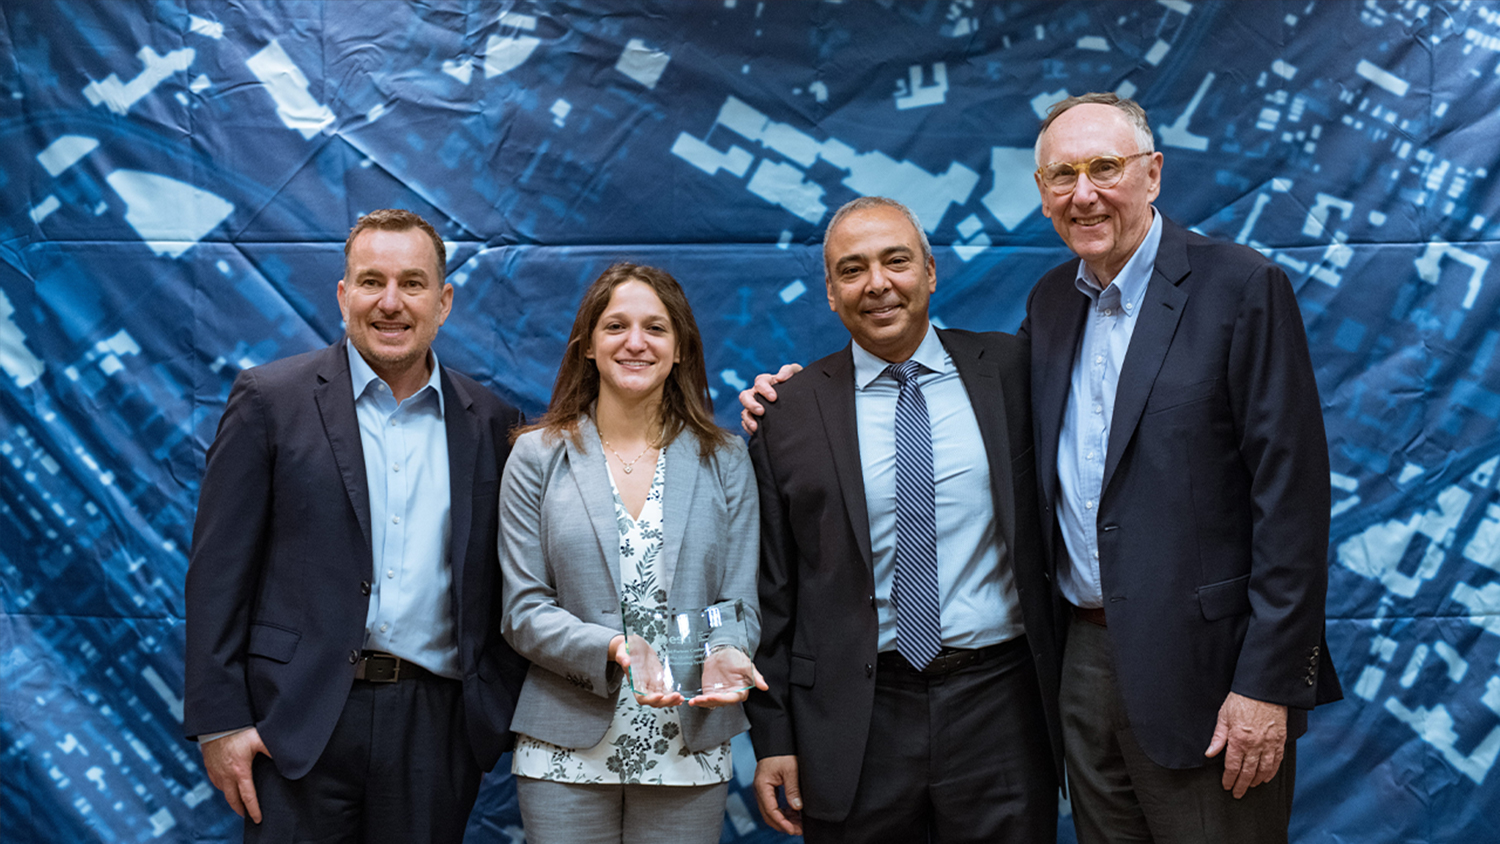 2019 Esri Partner Conference EPC Award - Eos Positioning Systems; Feature Image - PRESS RELEASE - 2019 EPC AWARD